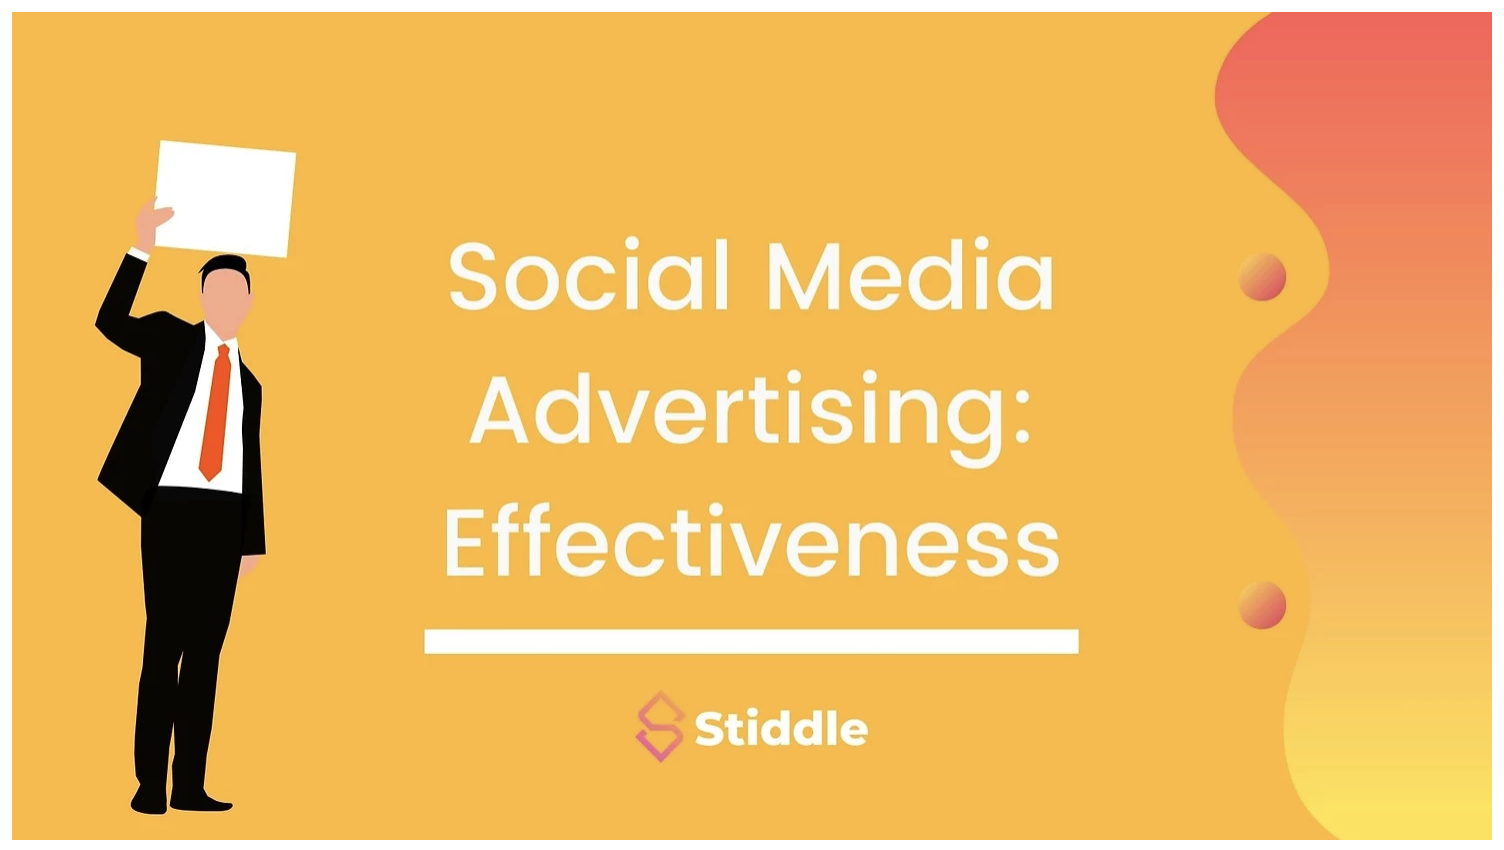 A Detailed Guide on the Effectiveness of Social Media Advertising